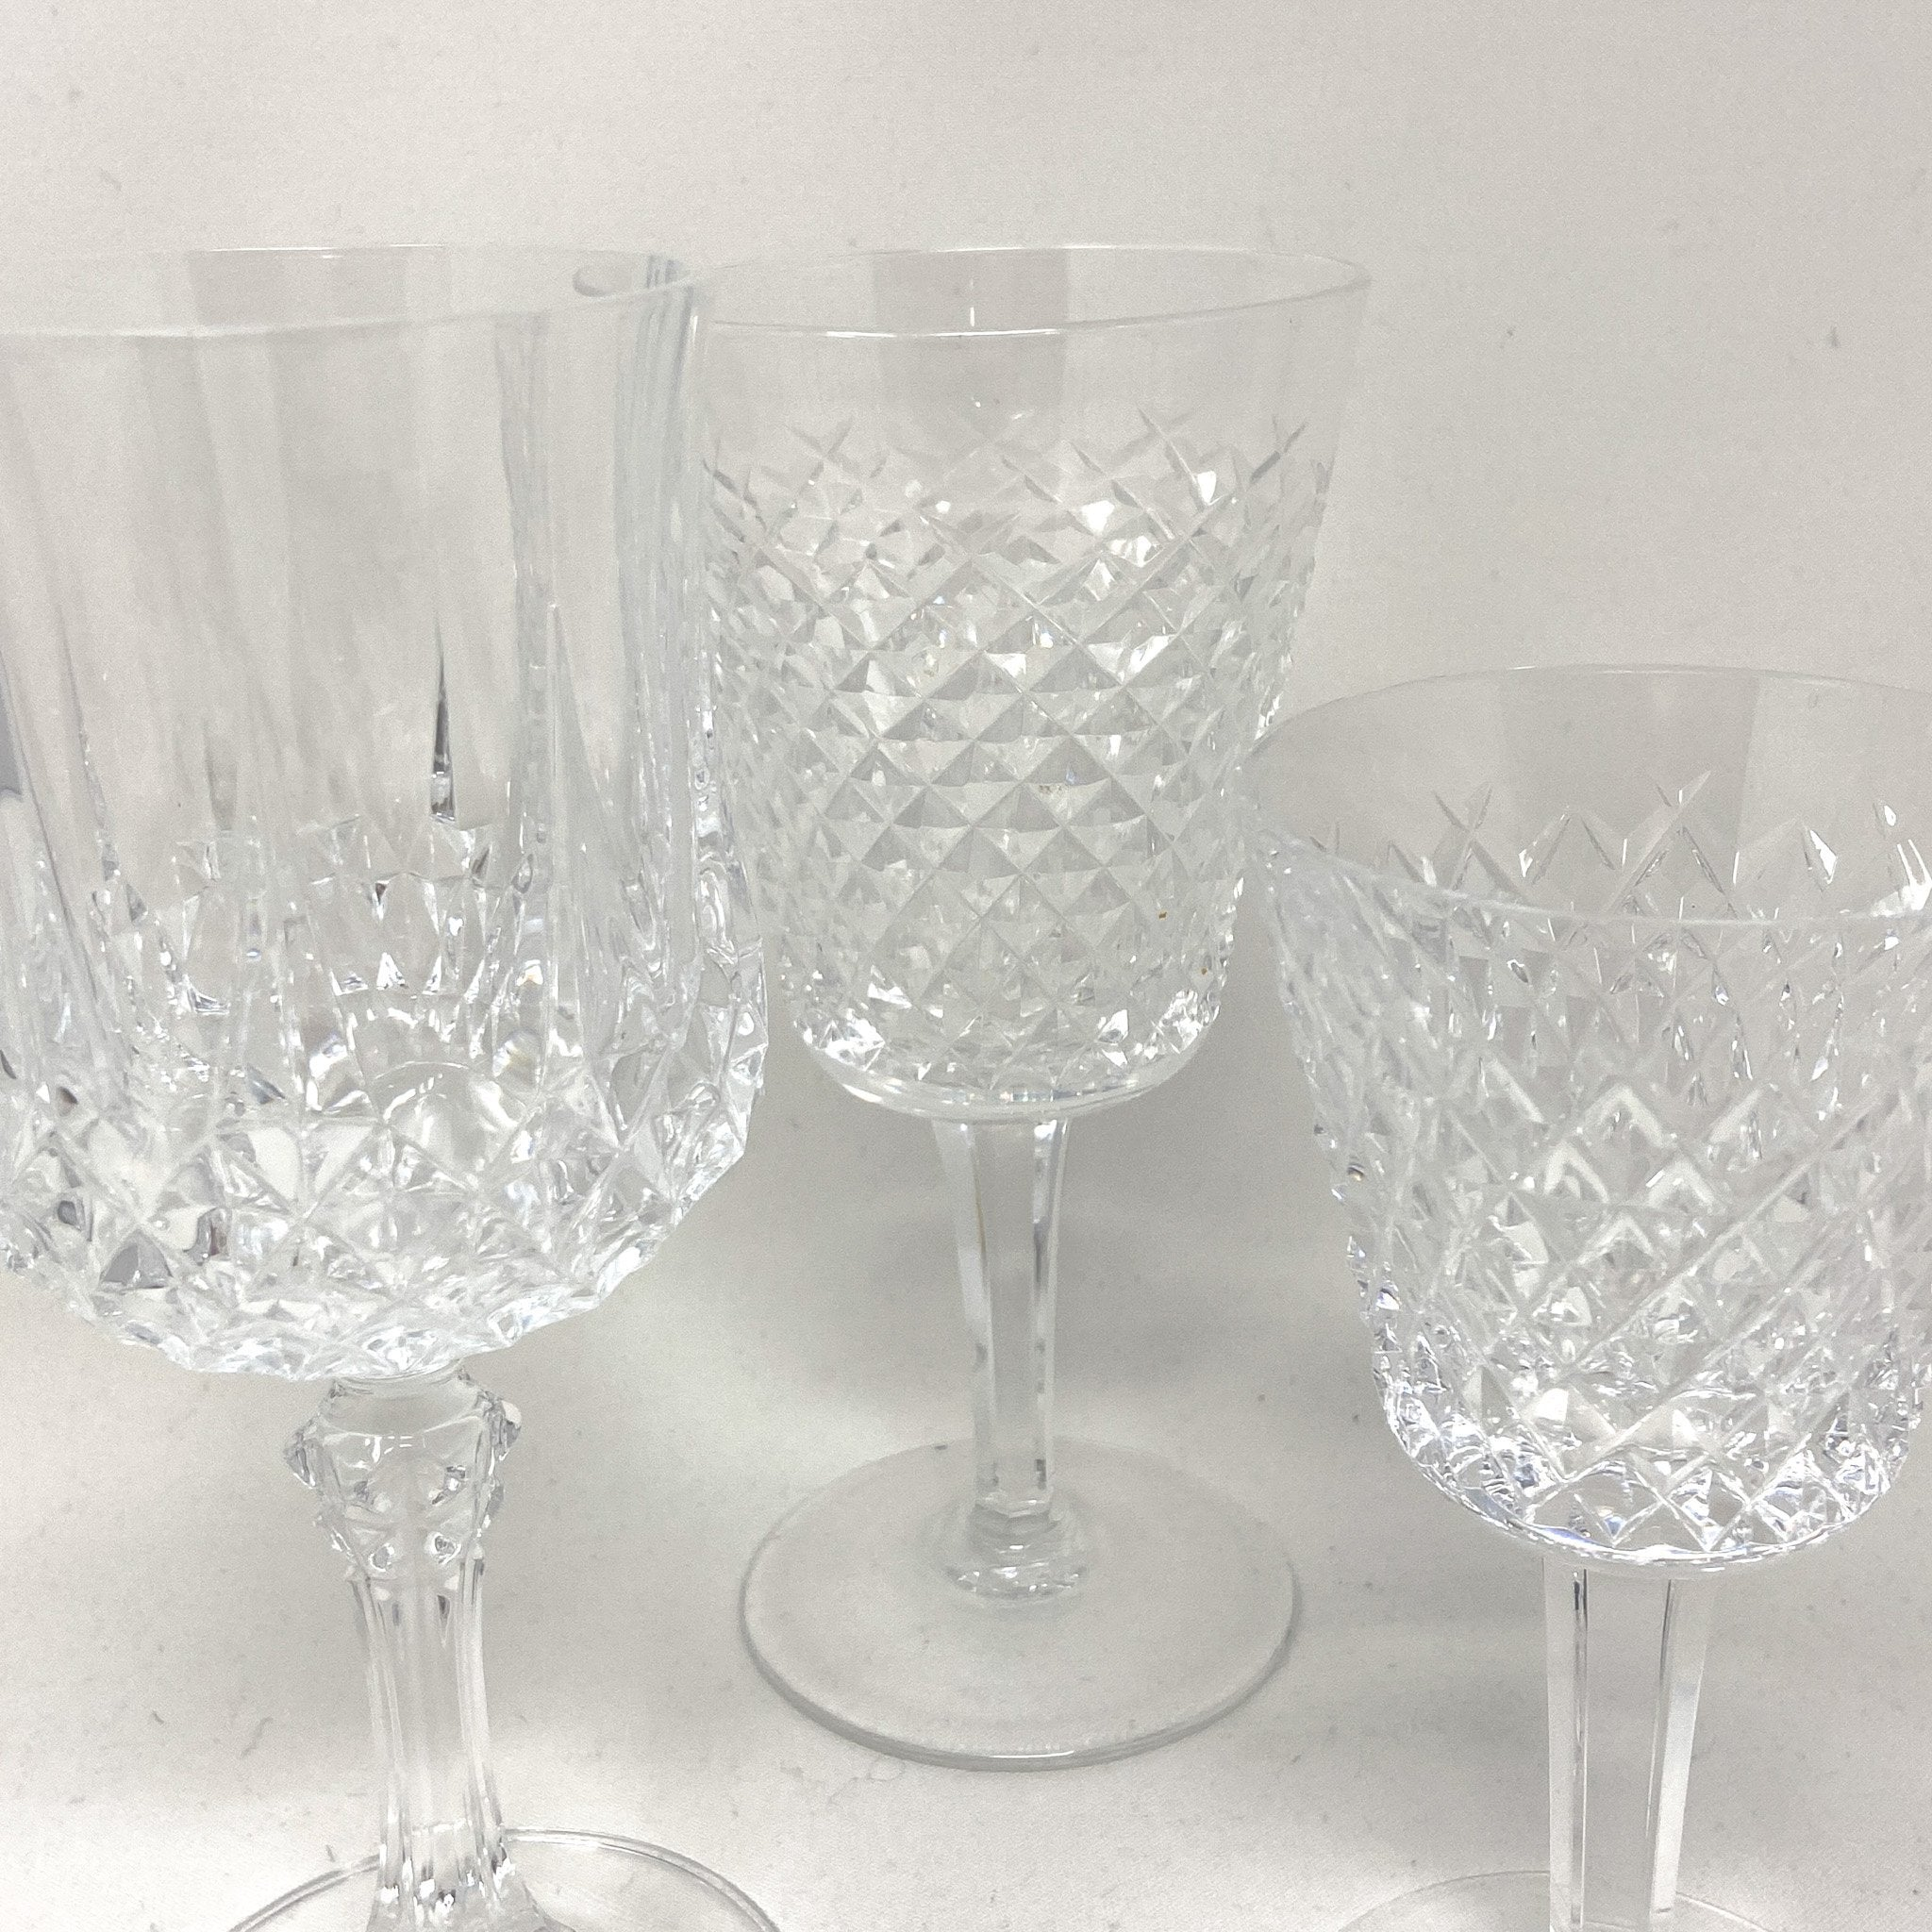 close up of Waterford Faceted Crystal Goblets | drinkware for dinner parties, holiday gatherings | The Brooklyn Teacup